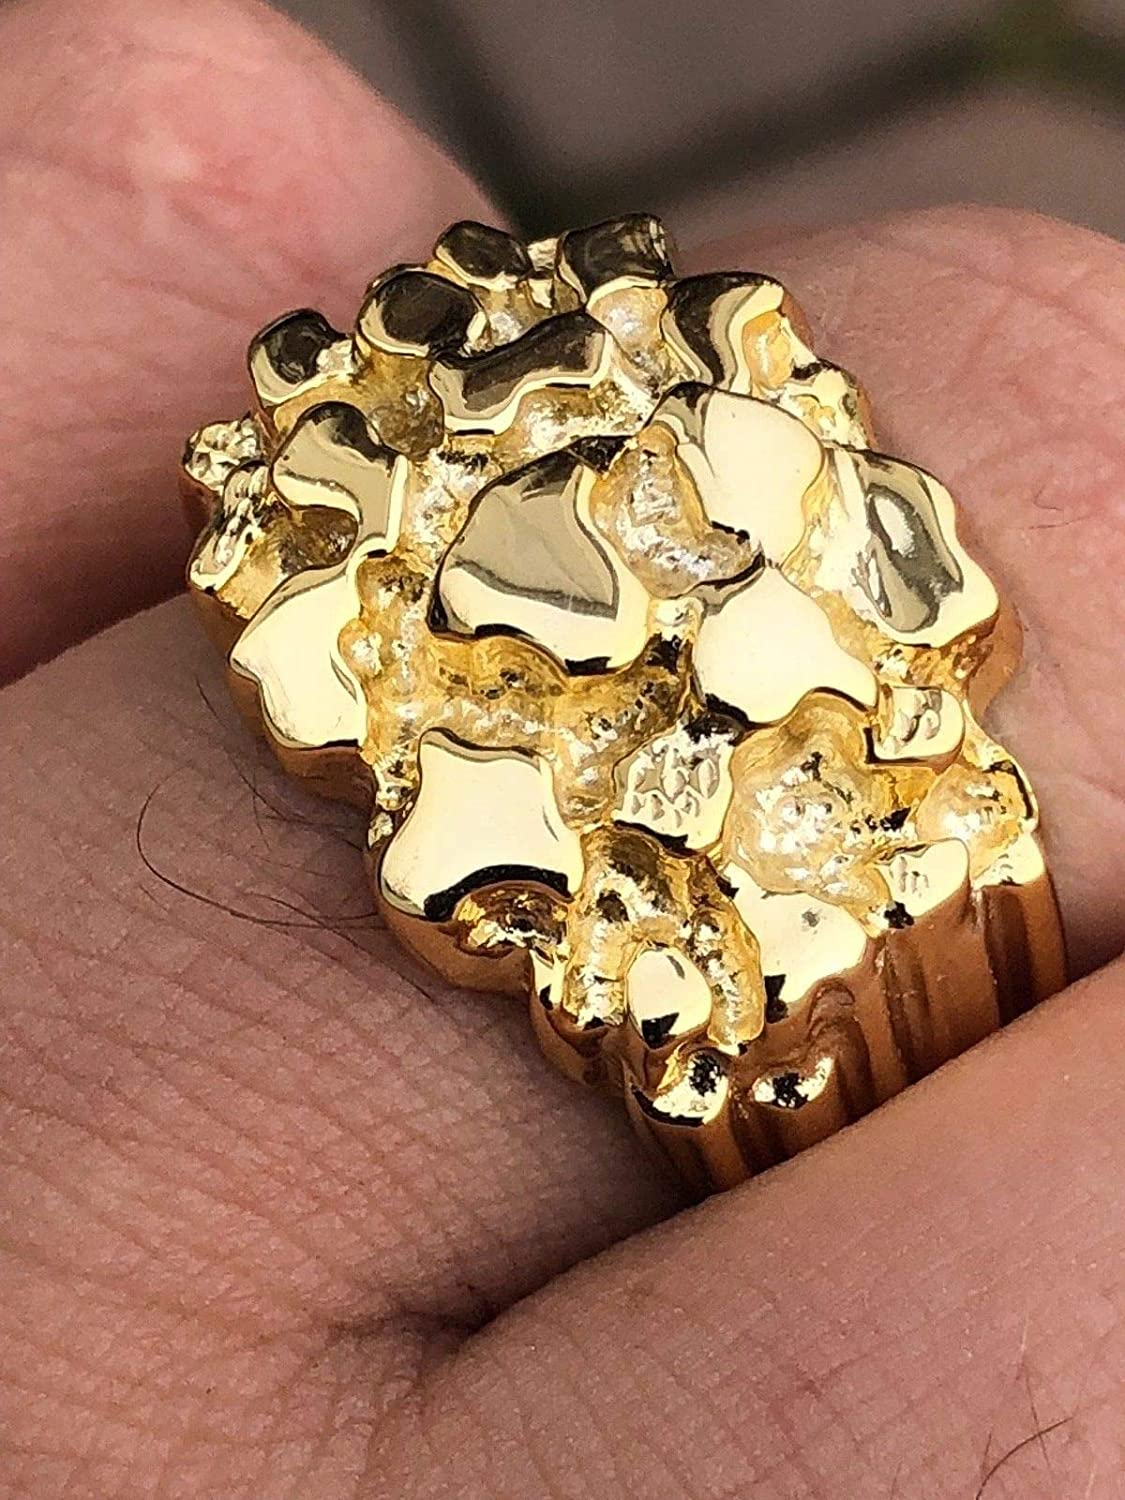 Gold Nugget Ring Sizes 7-13 Pinky or Ring Finger Harlembling Solid 925 Sterling Silver Mens Silver Ring